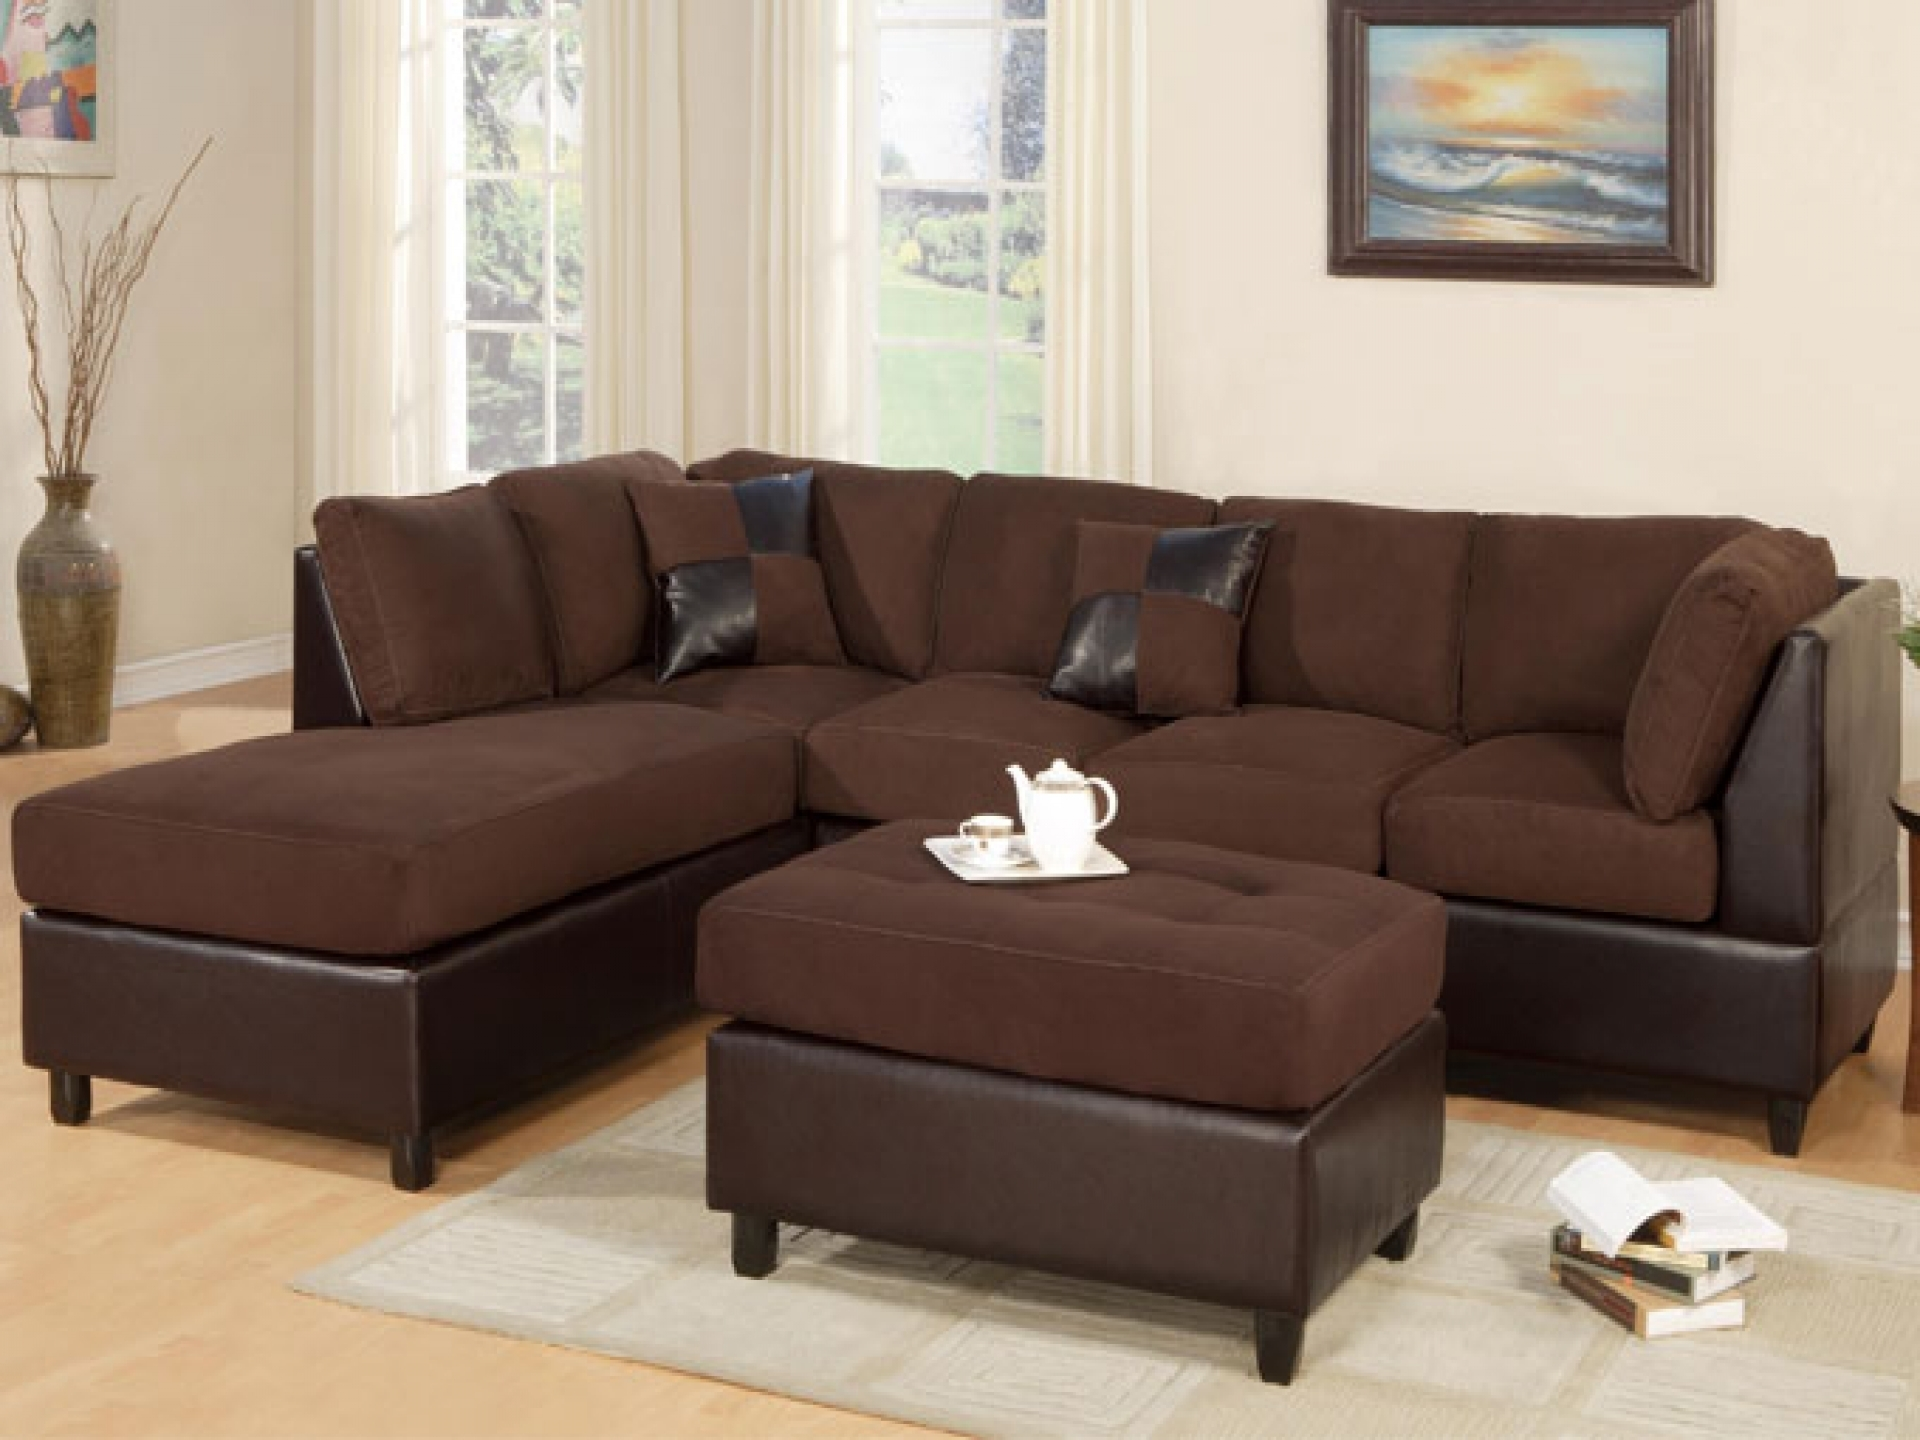 Cheap Living Room Sets Under American Freight Sectionals Sectional throughout Evansville In Sectional Sofas